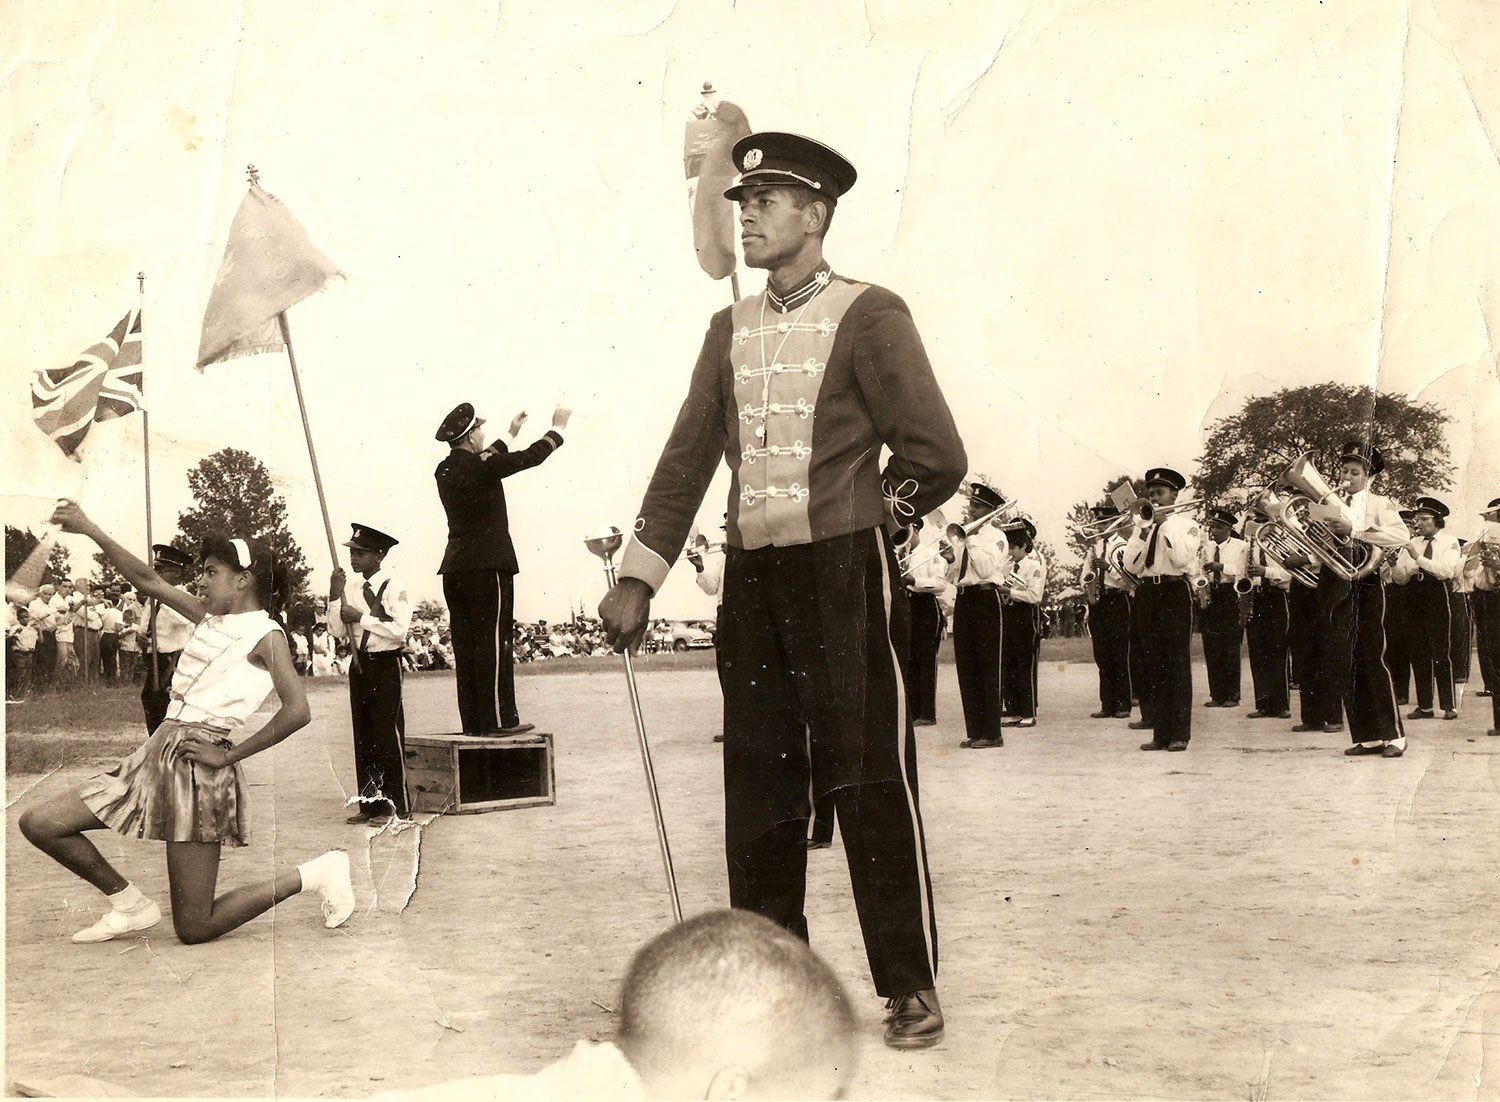 North Buxton Maple Leaf Band at a tattoo hosted in North Buxton, 1960 (Photo courtesy of Adrienne Shadd)